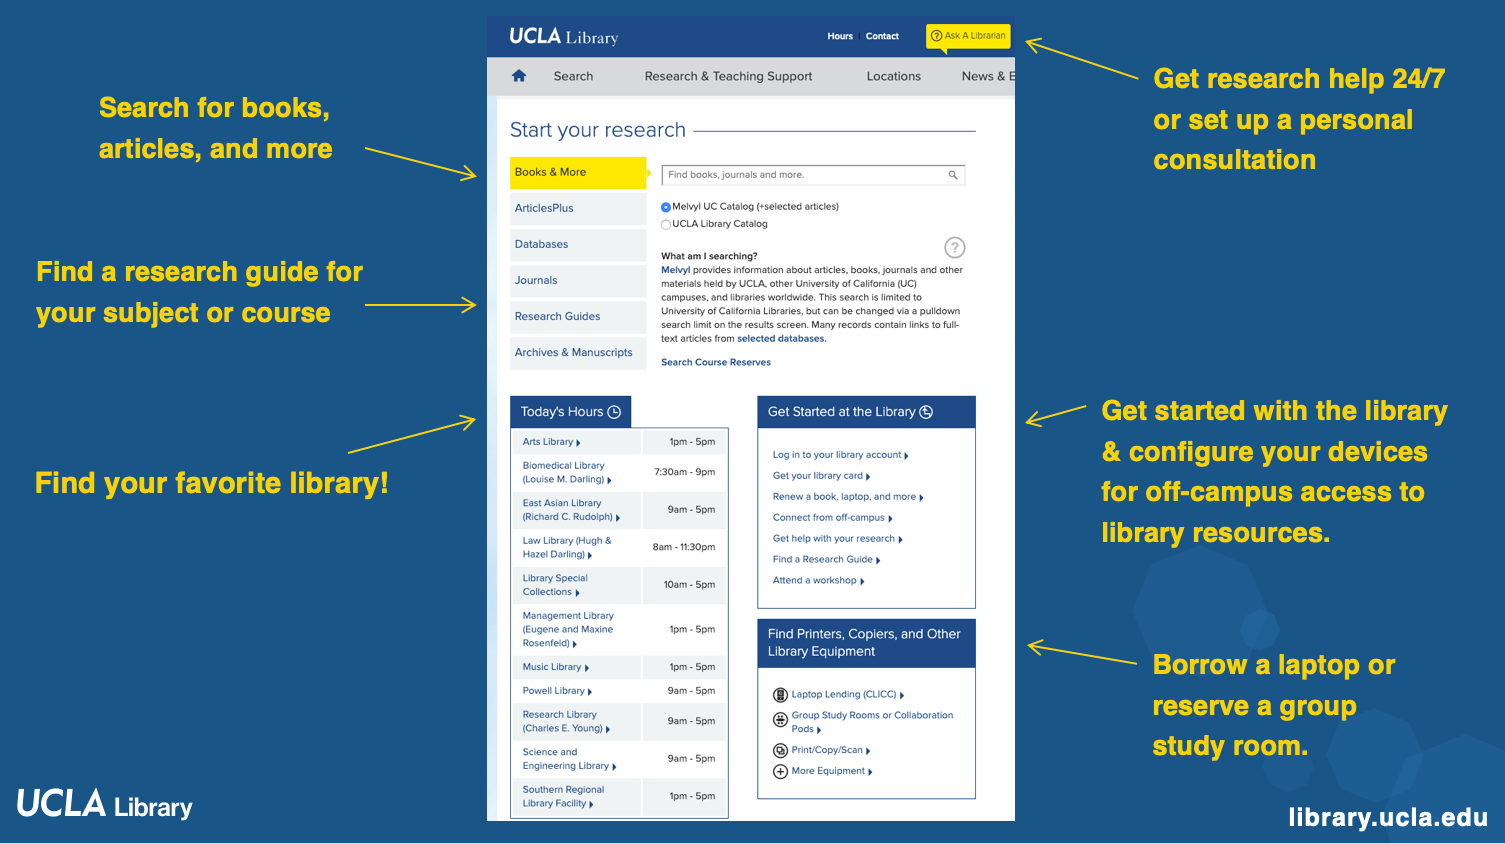 The UCLA Library homepage powerpoint slide. Highlighted links to Research and Teaching Support, Ask a Librarian, Start your research, Connect from Off-campus, and Library hours.